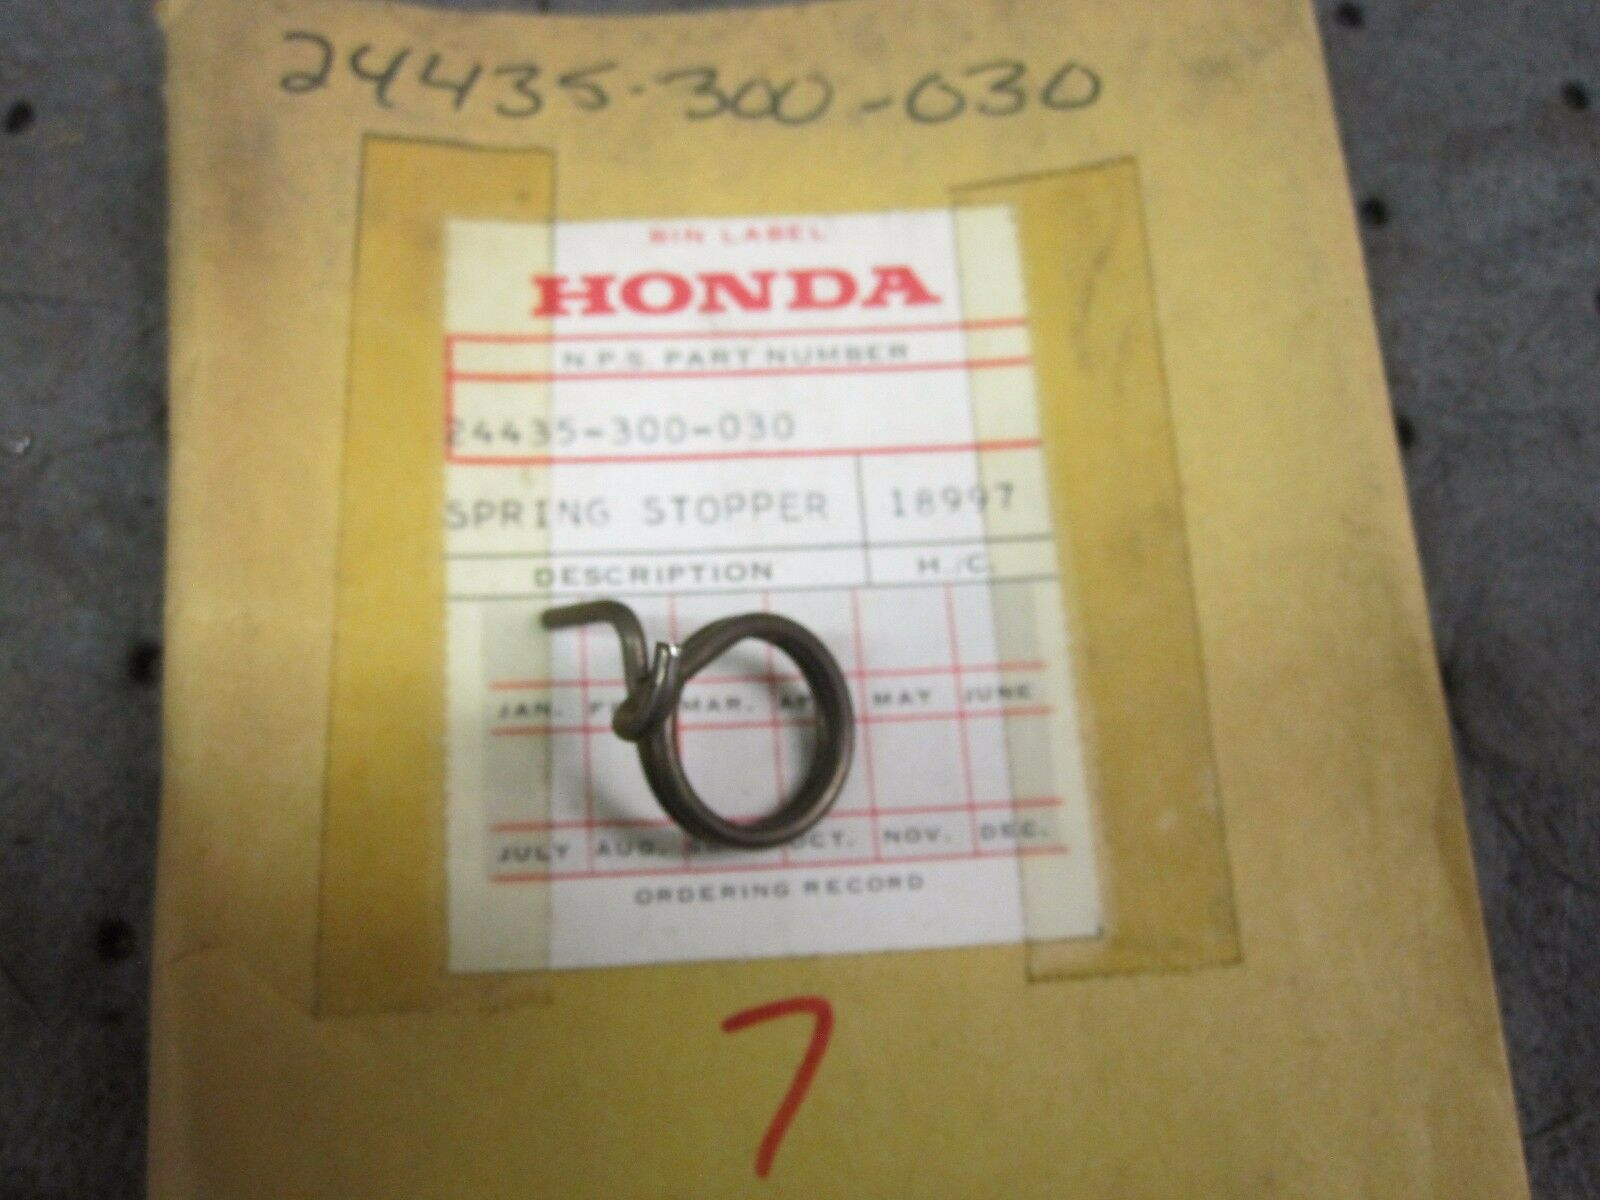 Honda CB 750 OEM Shift Drum Stopper Spring 24435-300-030